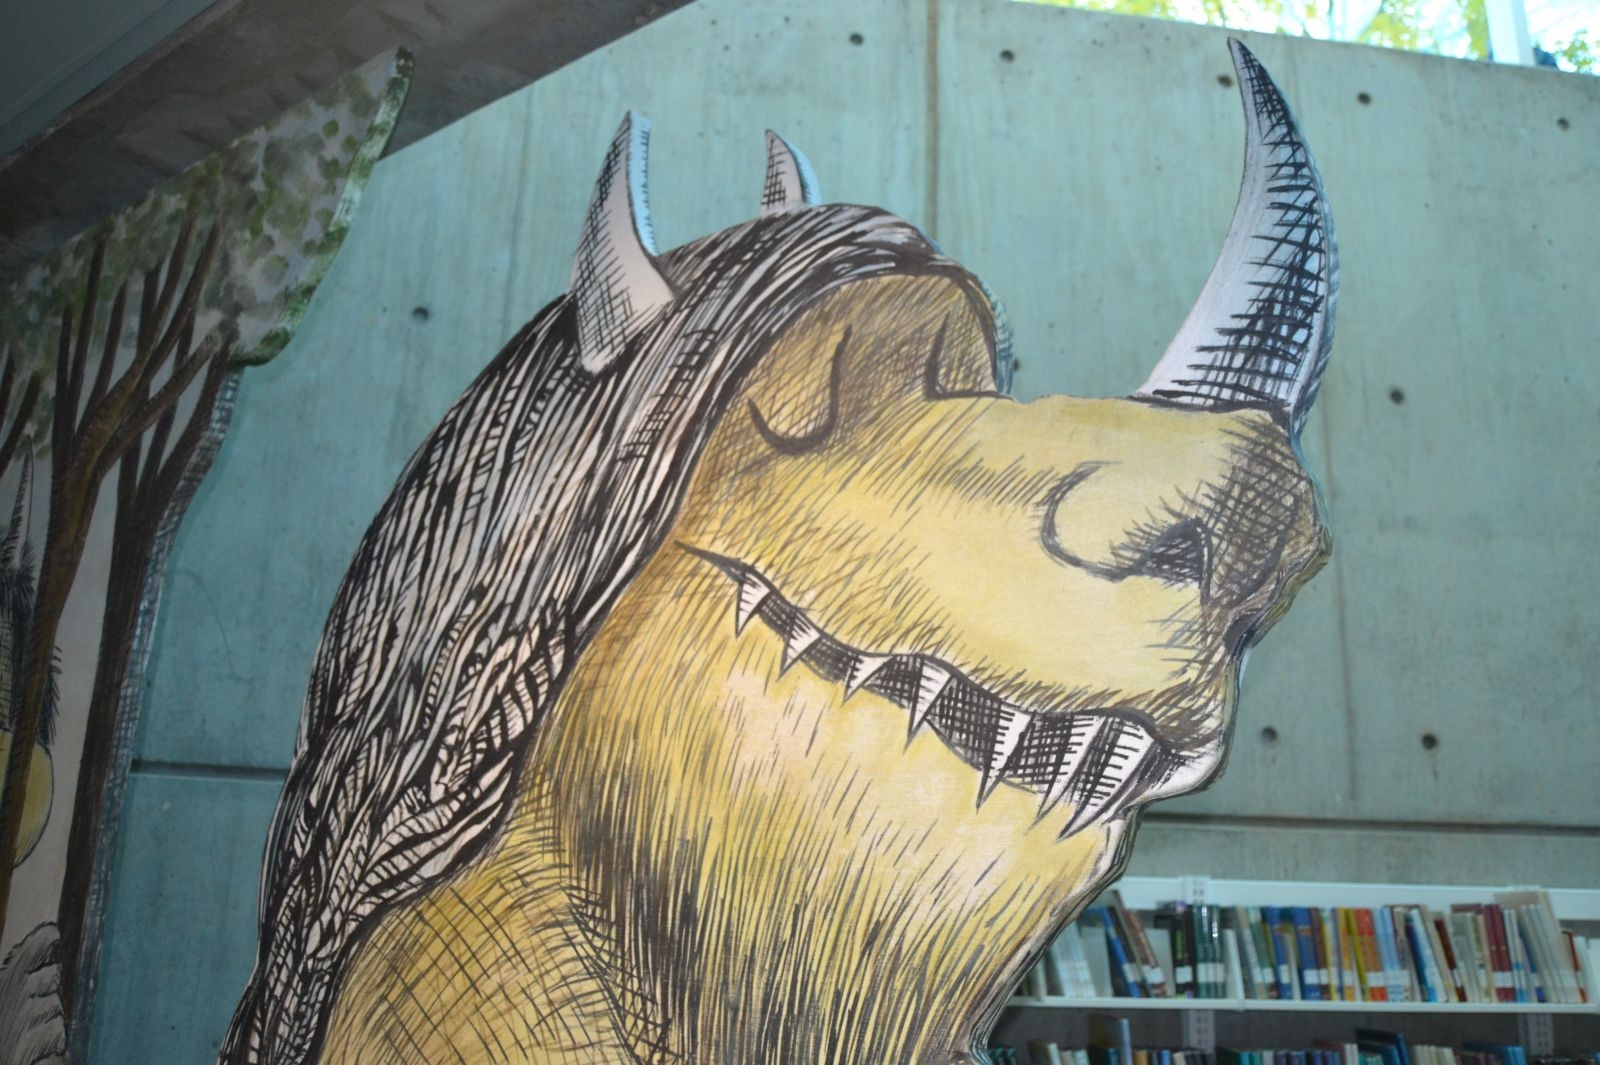 The library's iconic Where the Wild Things Are characters now parade on the garden level. (Photo/Melinda Waldrop)